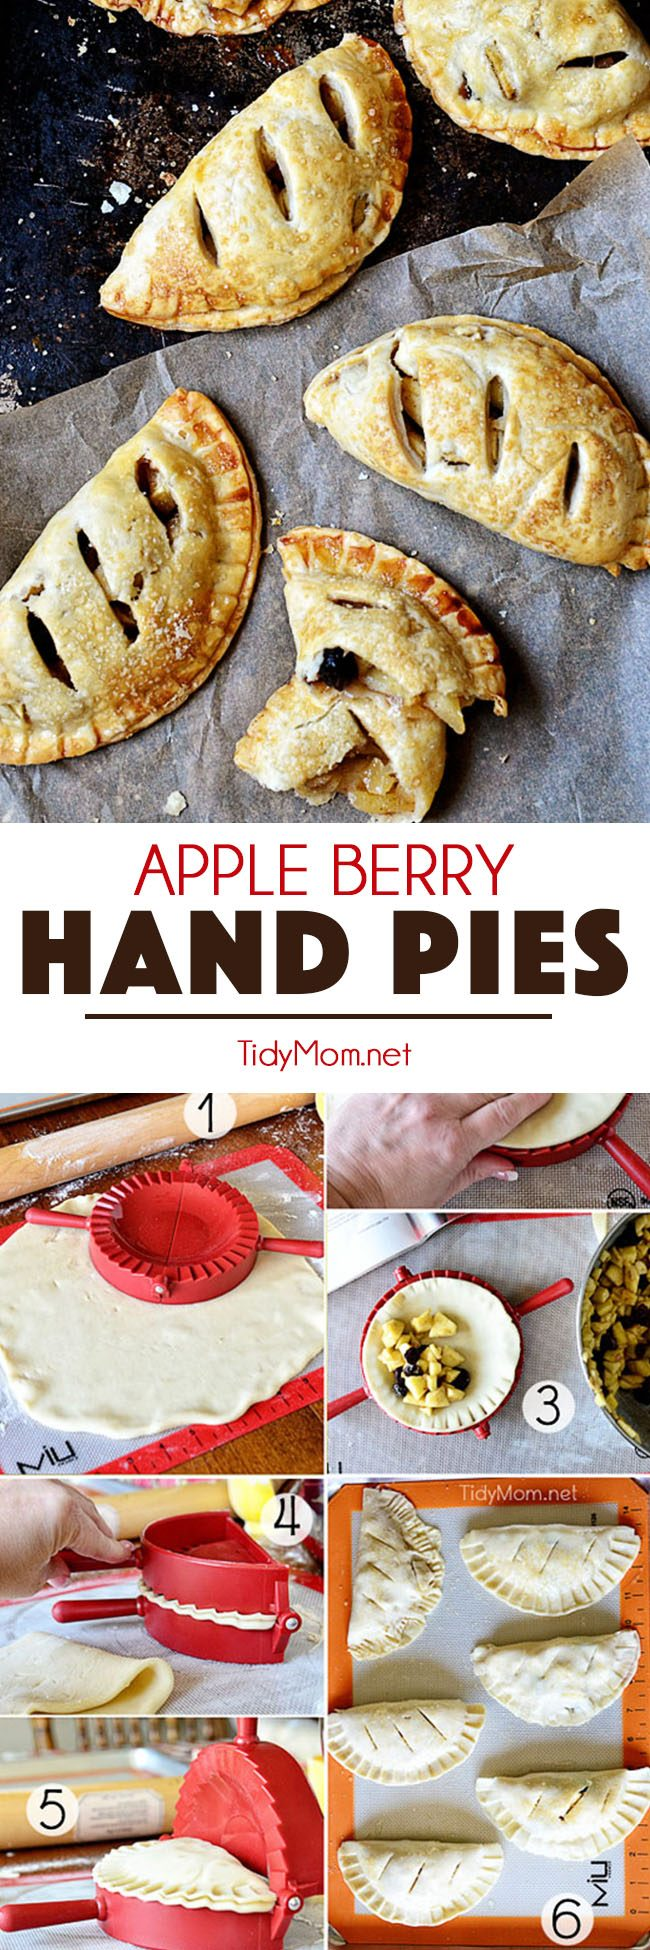 Refrigerated pie crust and a pie press makes this Apple Berry Hand Pies recipe simple and quick